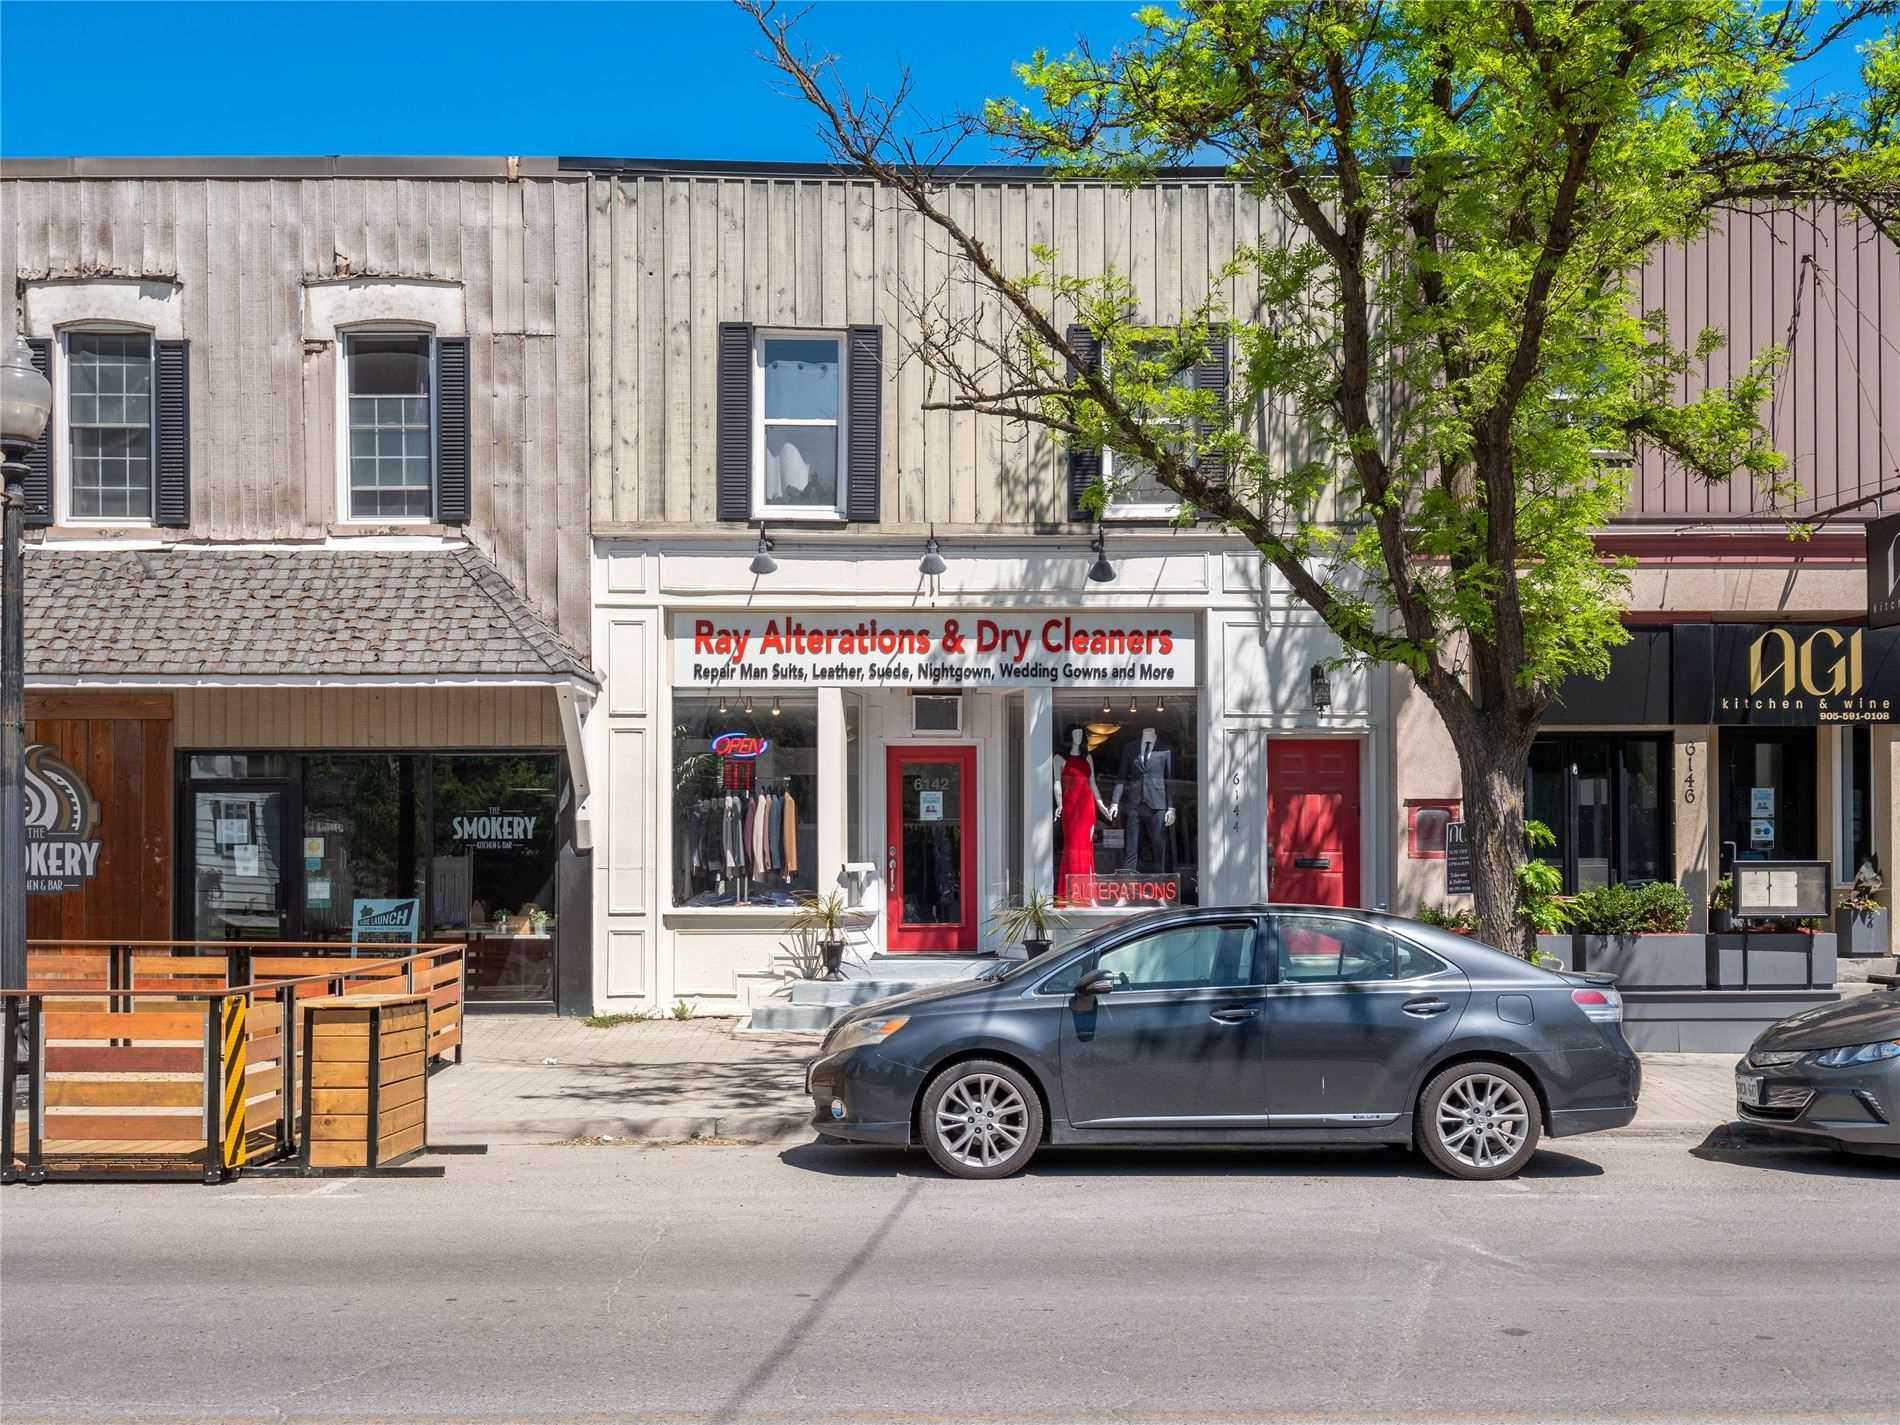 6142 Main St, Whitchurch-stouffville Ontario, Canada